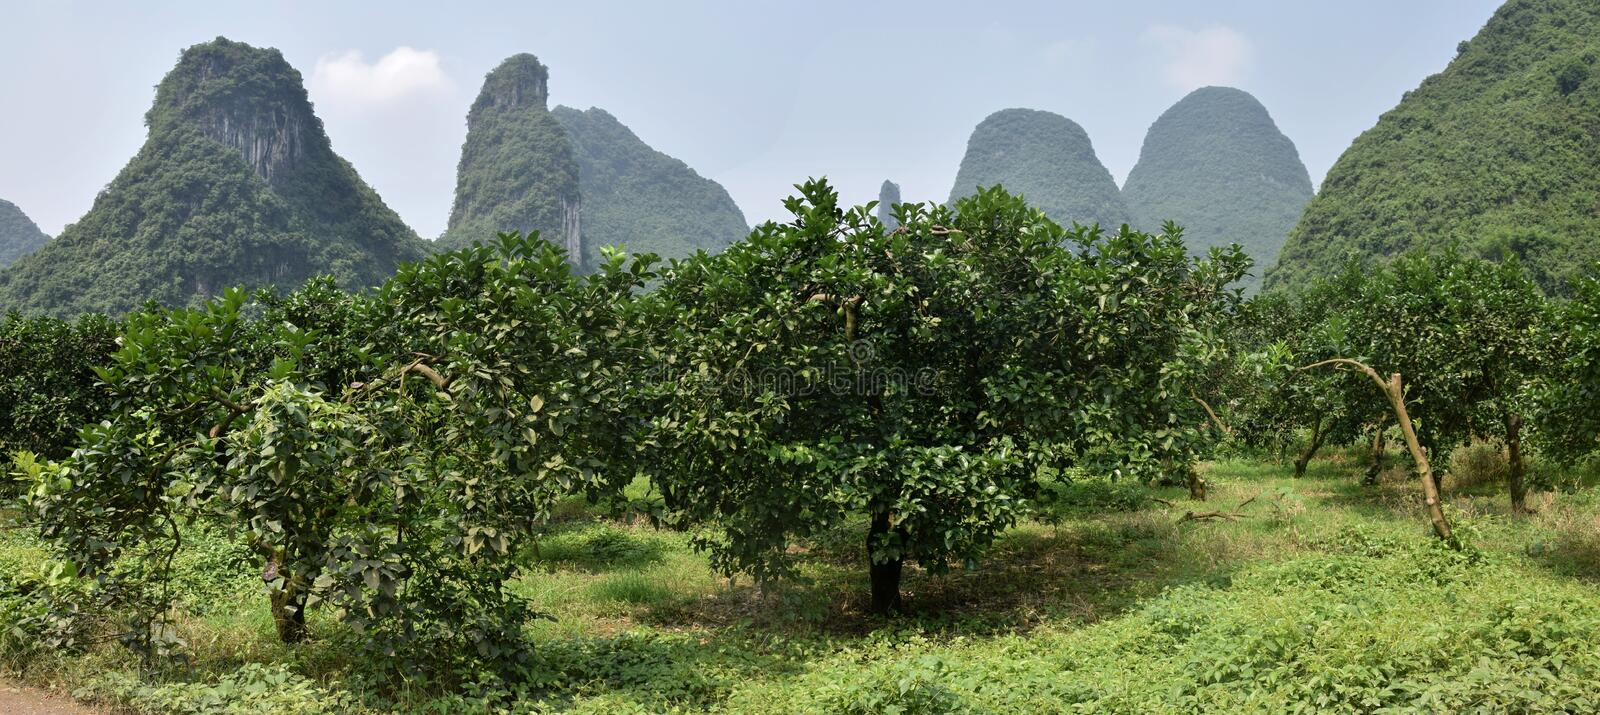 The area around small town Yangshuo in Guangxi Zhuang Autonomous Region in China. The Shaddock trees, Citrus maxima, grow plentifully in Yangshuo region in royalty free stock images